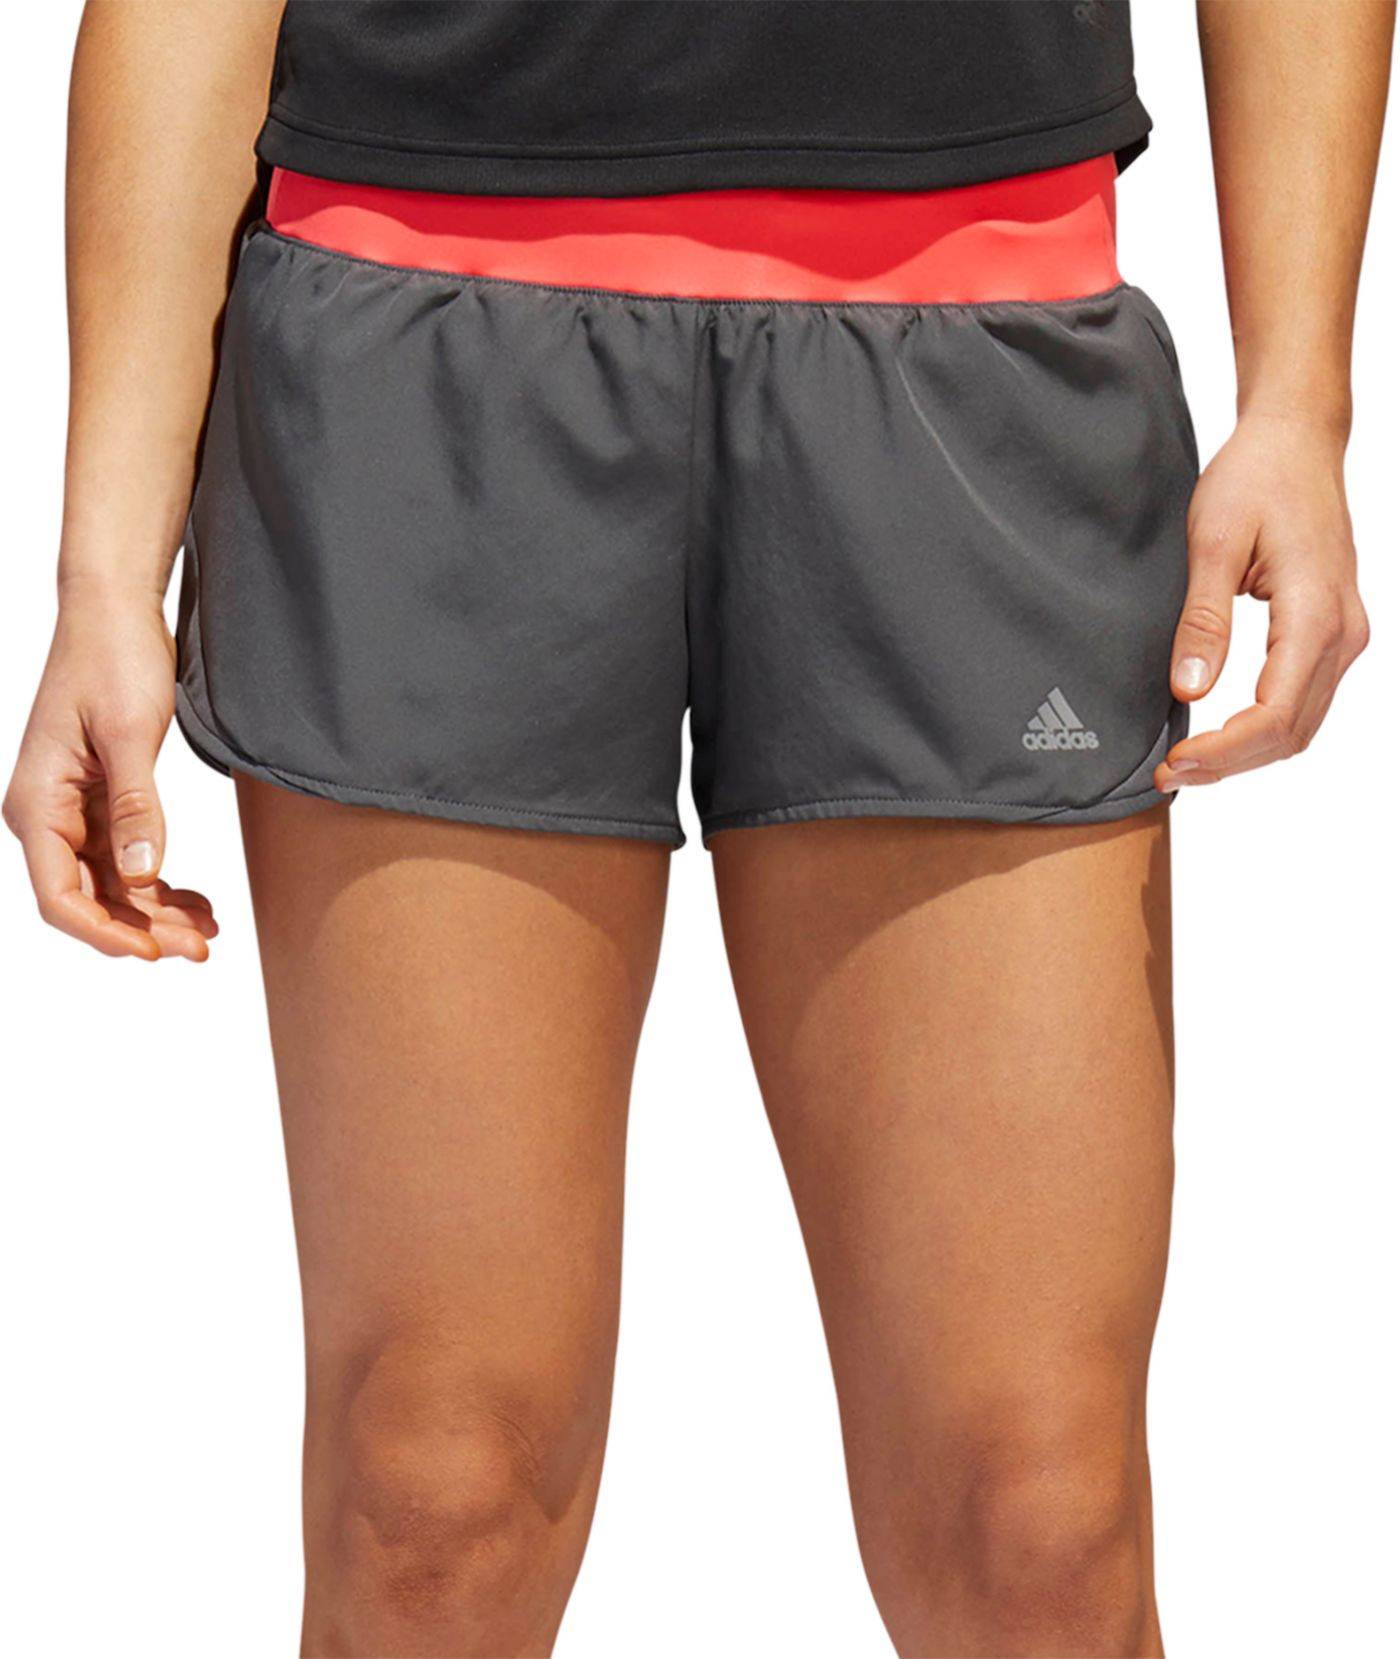 adidas Women's Run it Running Shorts